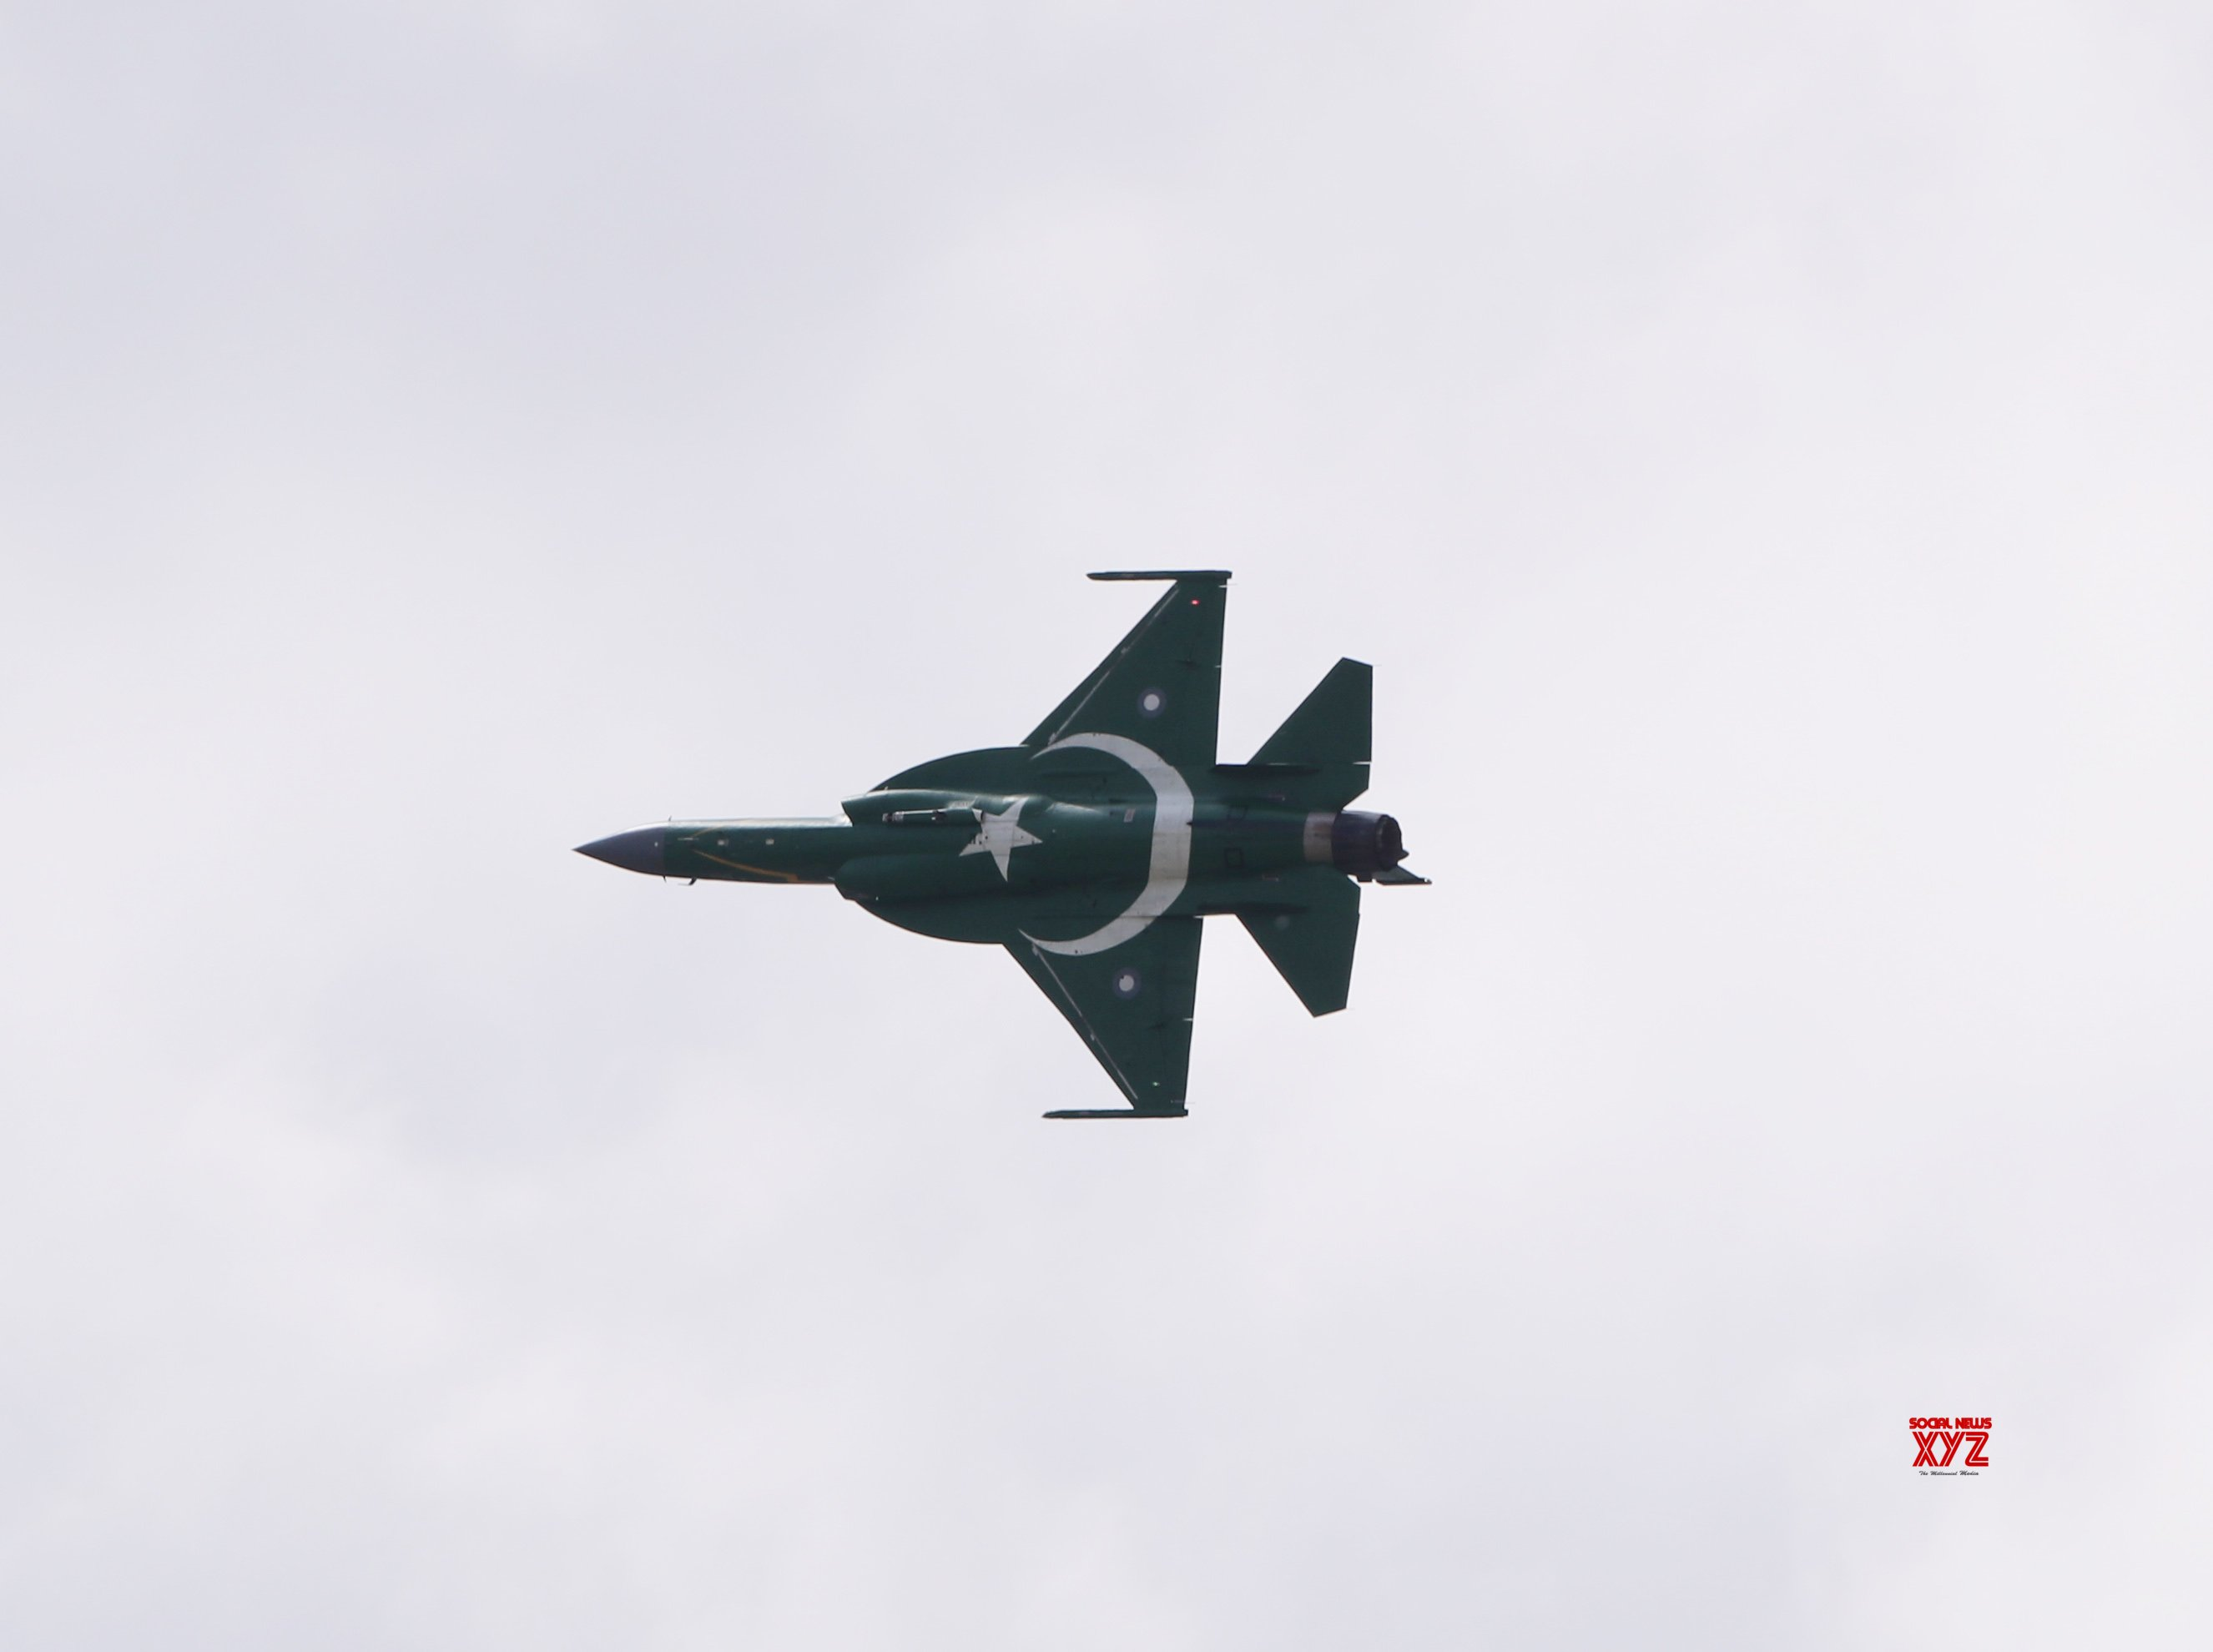 FRANCE - PARIS - AIR SHOW - JF - 17 THUNDER #Gallery